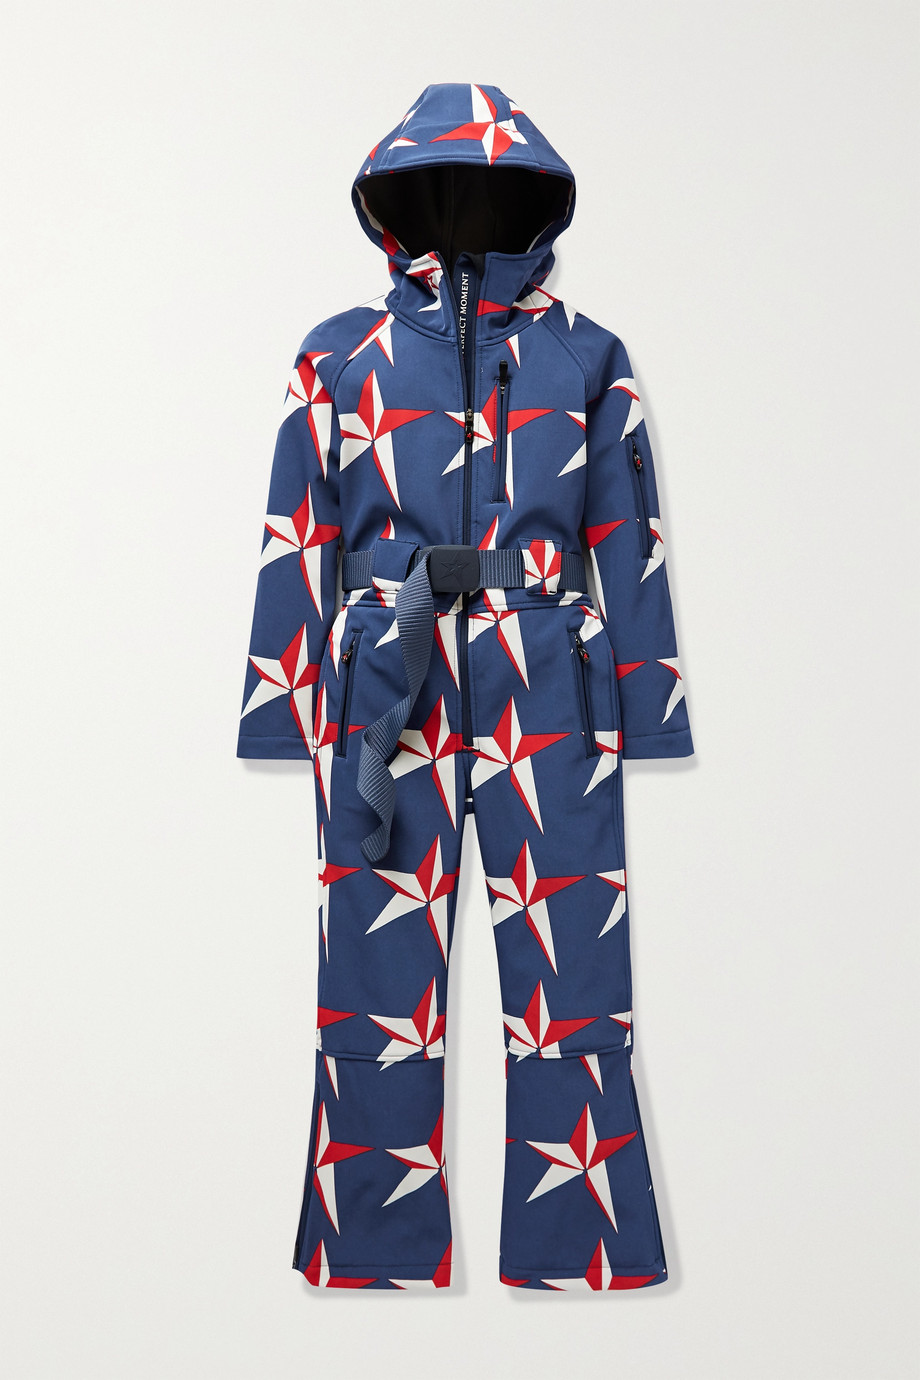 Perfect Moment Kids Ages 6 - 12 hooded belted printed ski suit